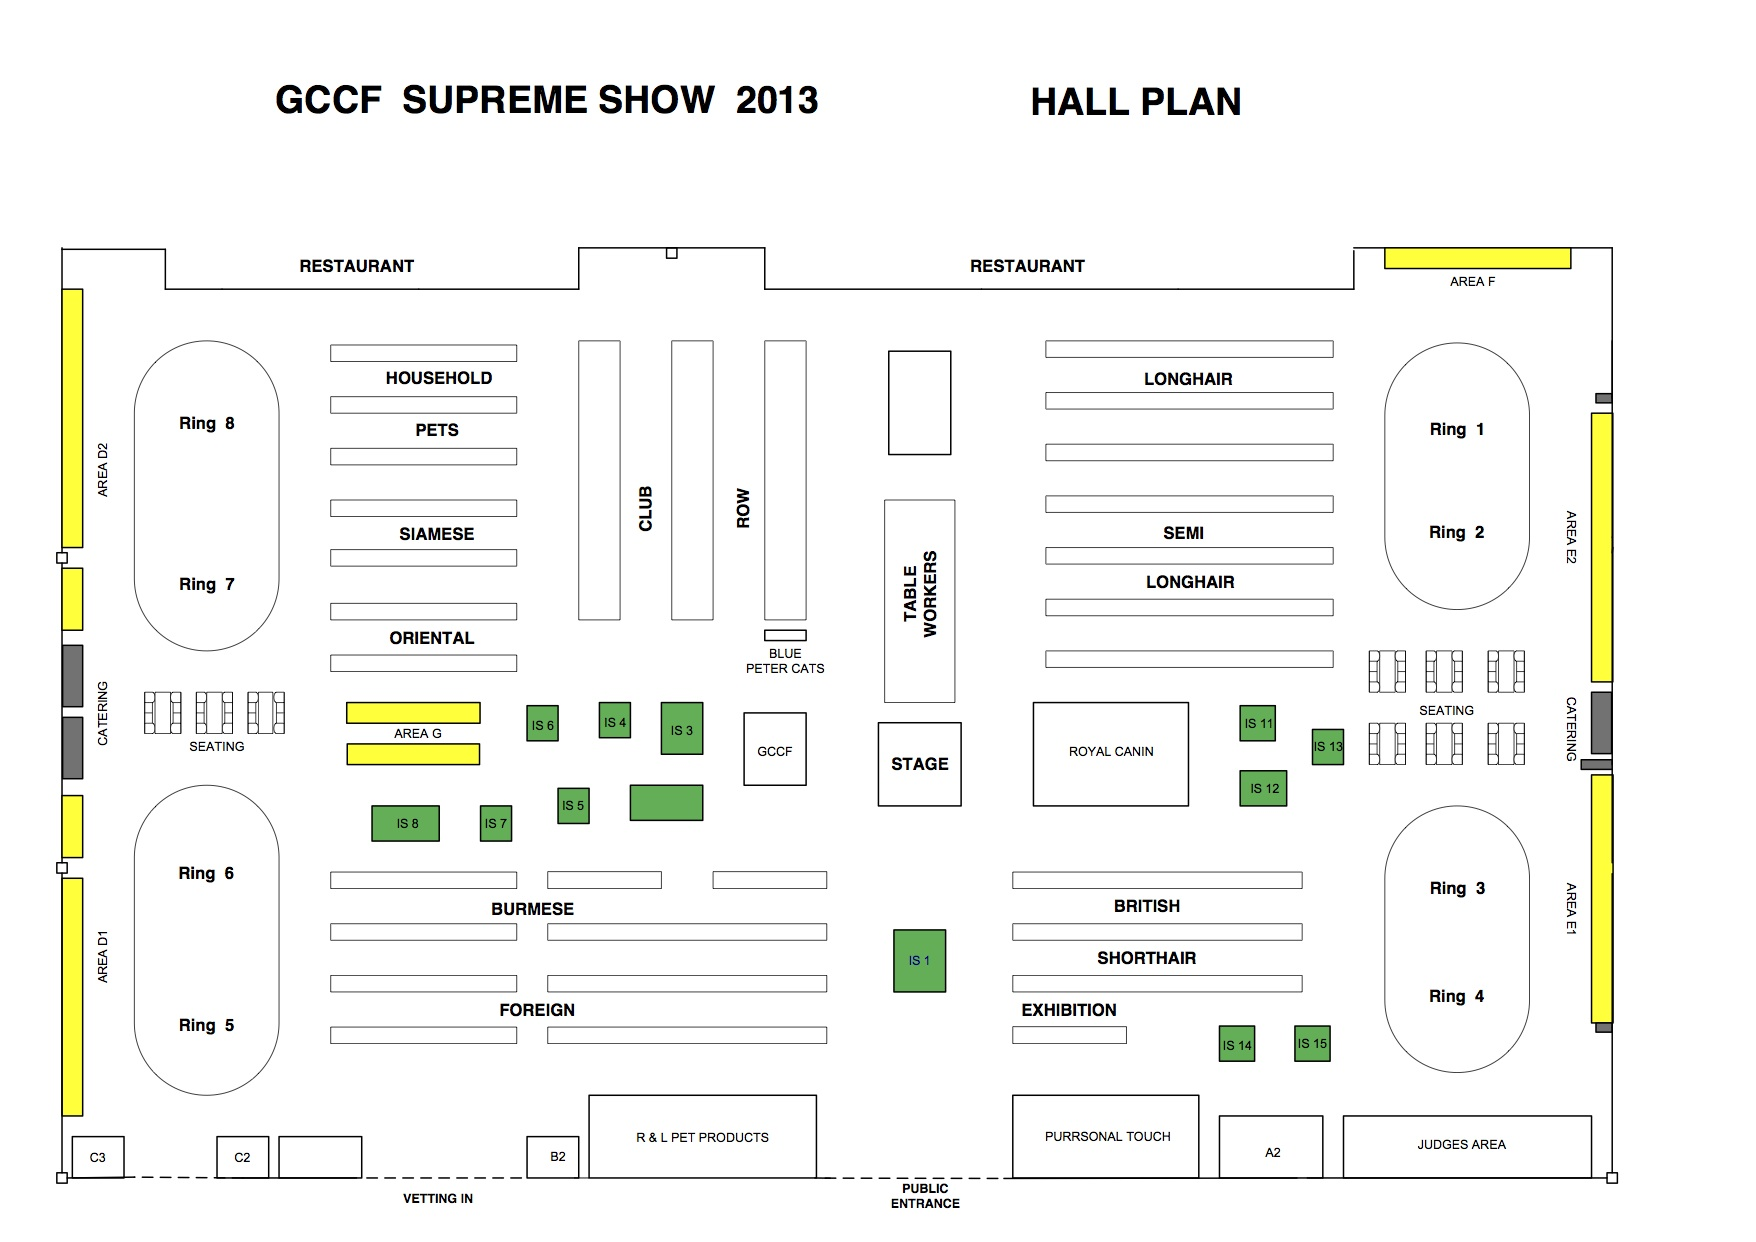 SUPREME HALL PLAN 2013